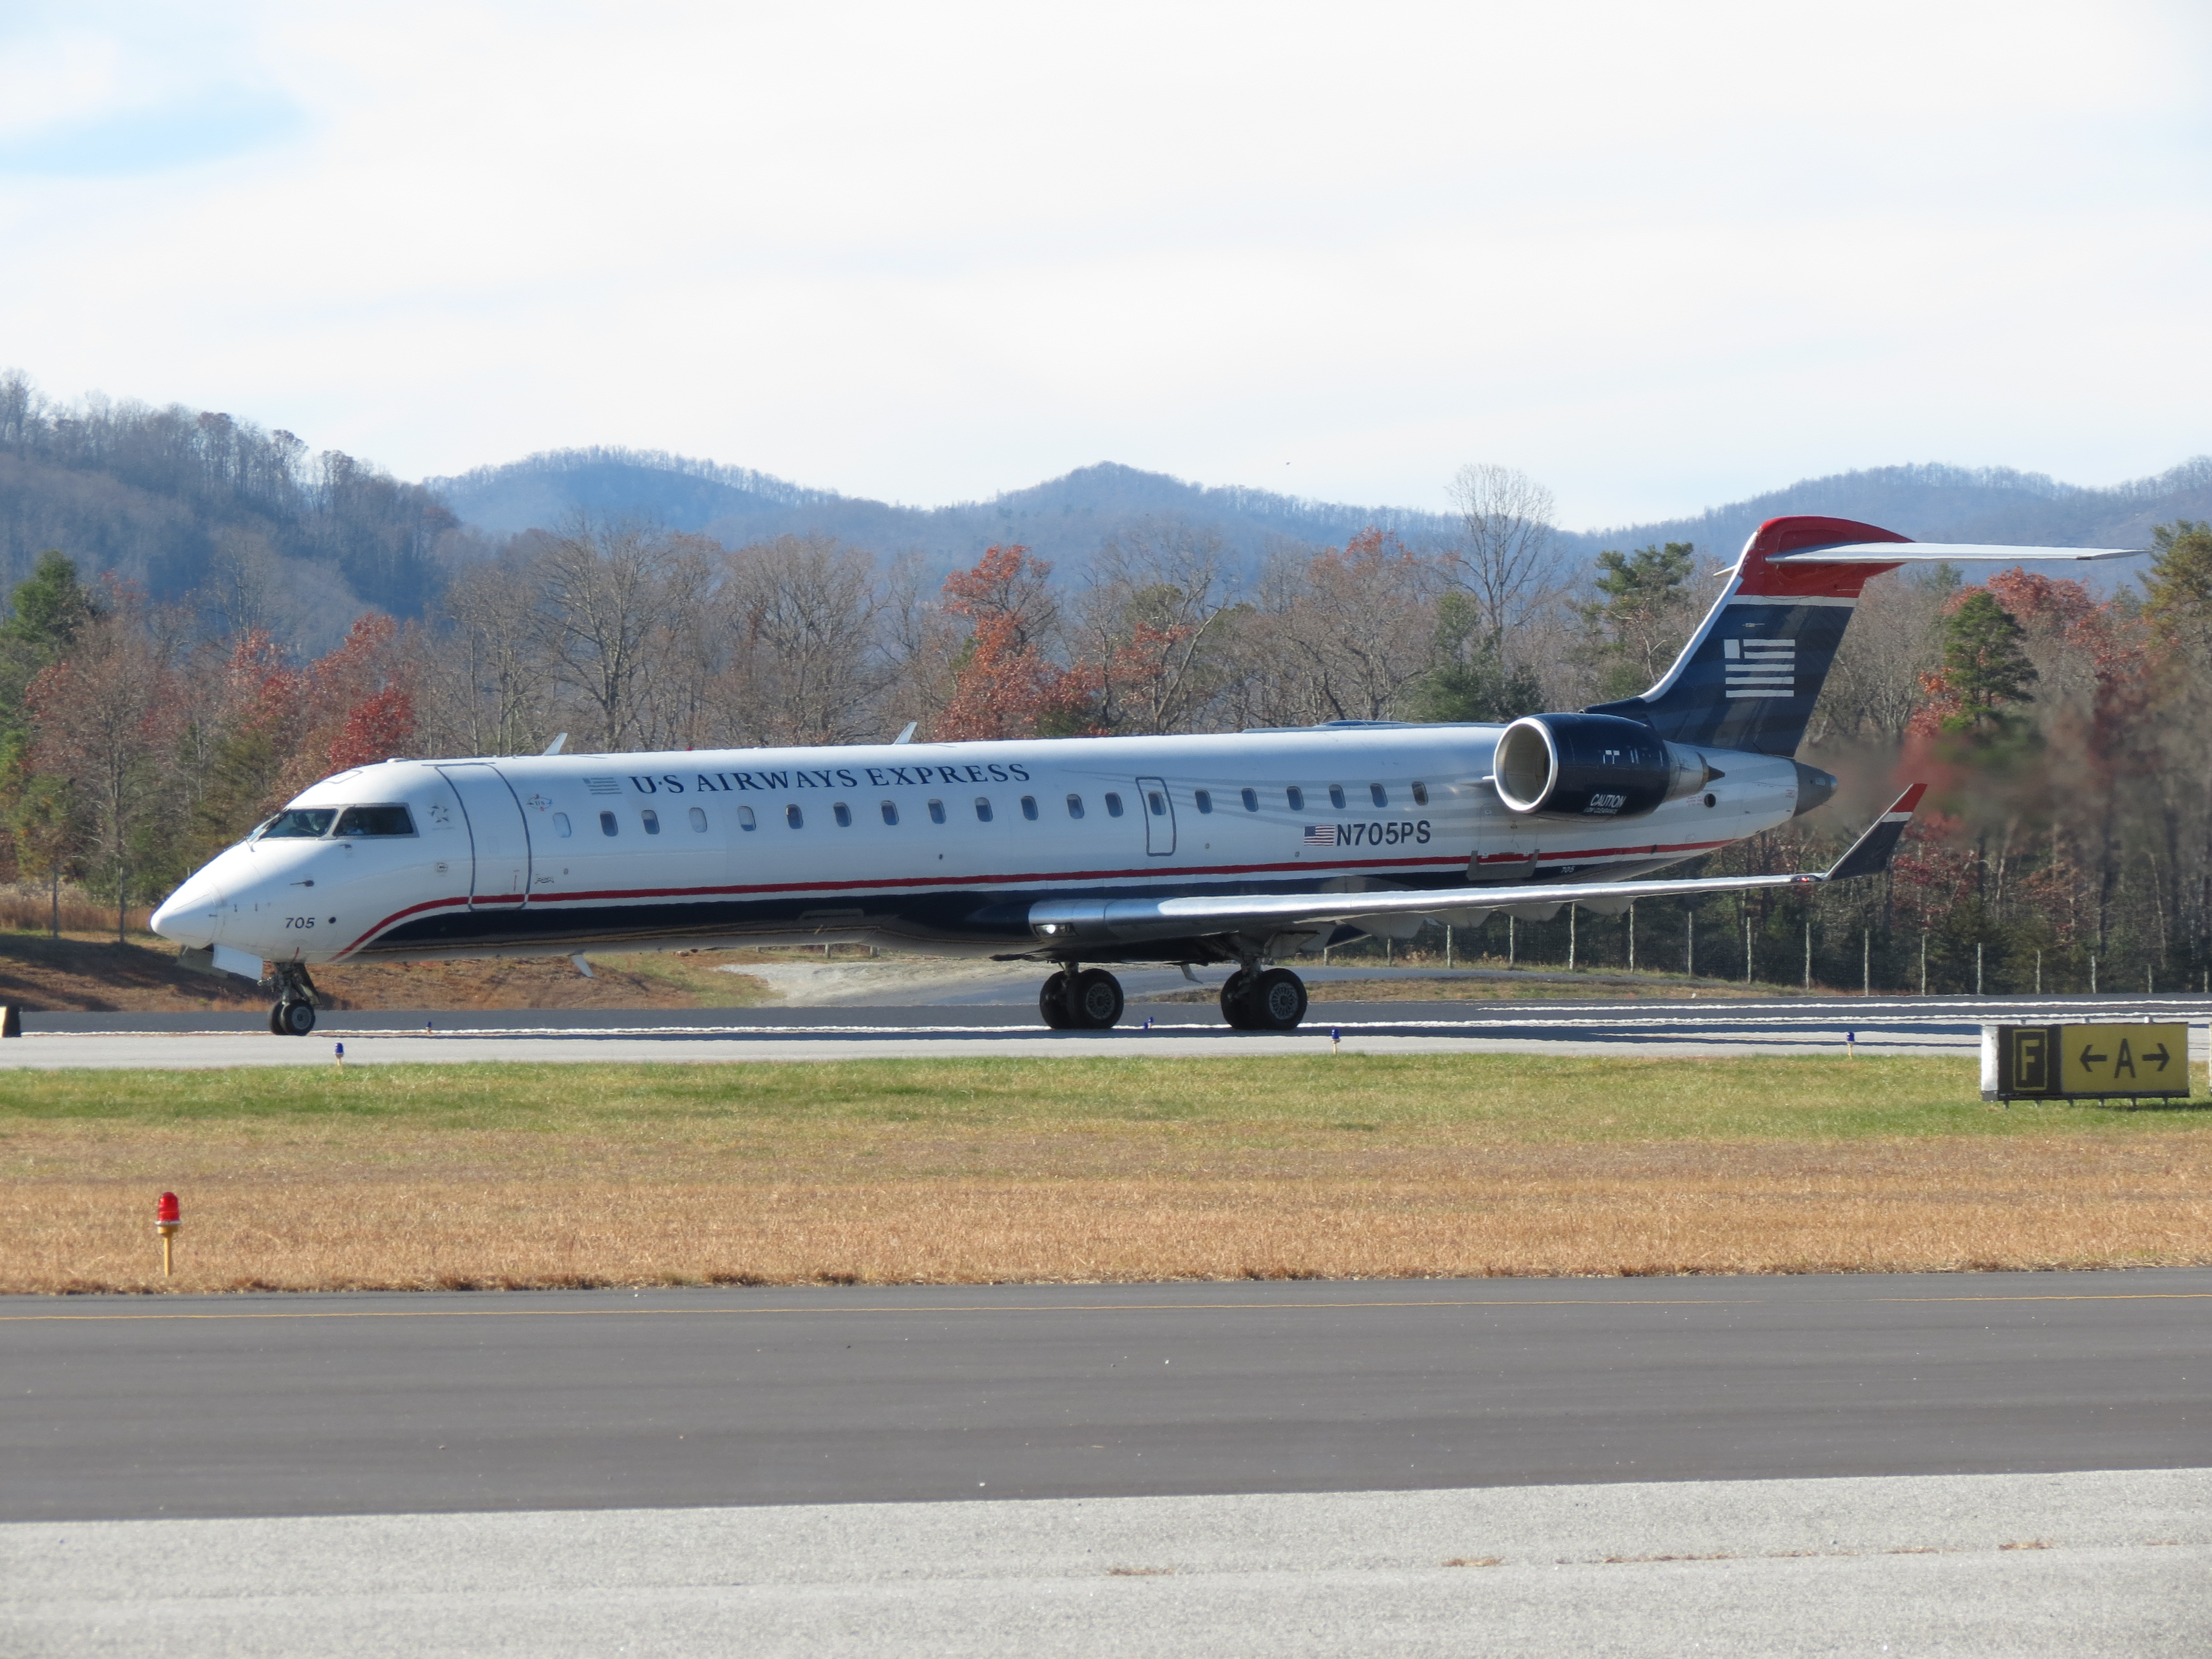 US Airways Express CRJ-700 by InDeepSchit on DeviantArt